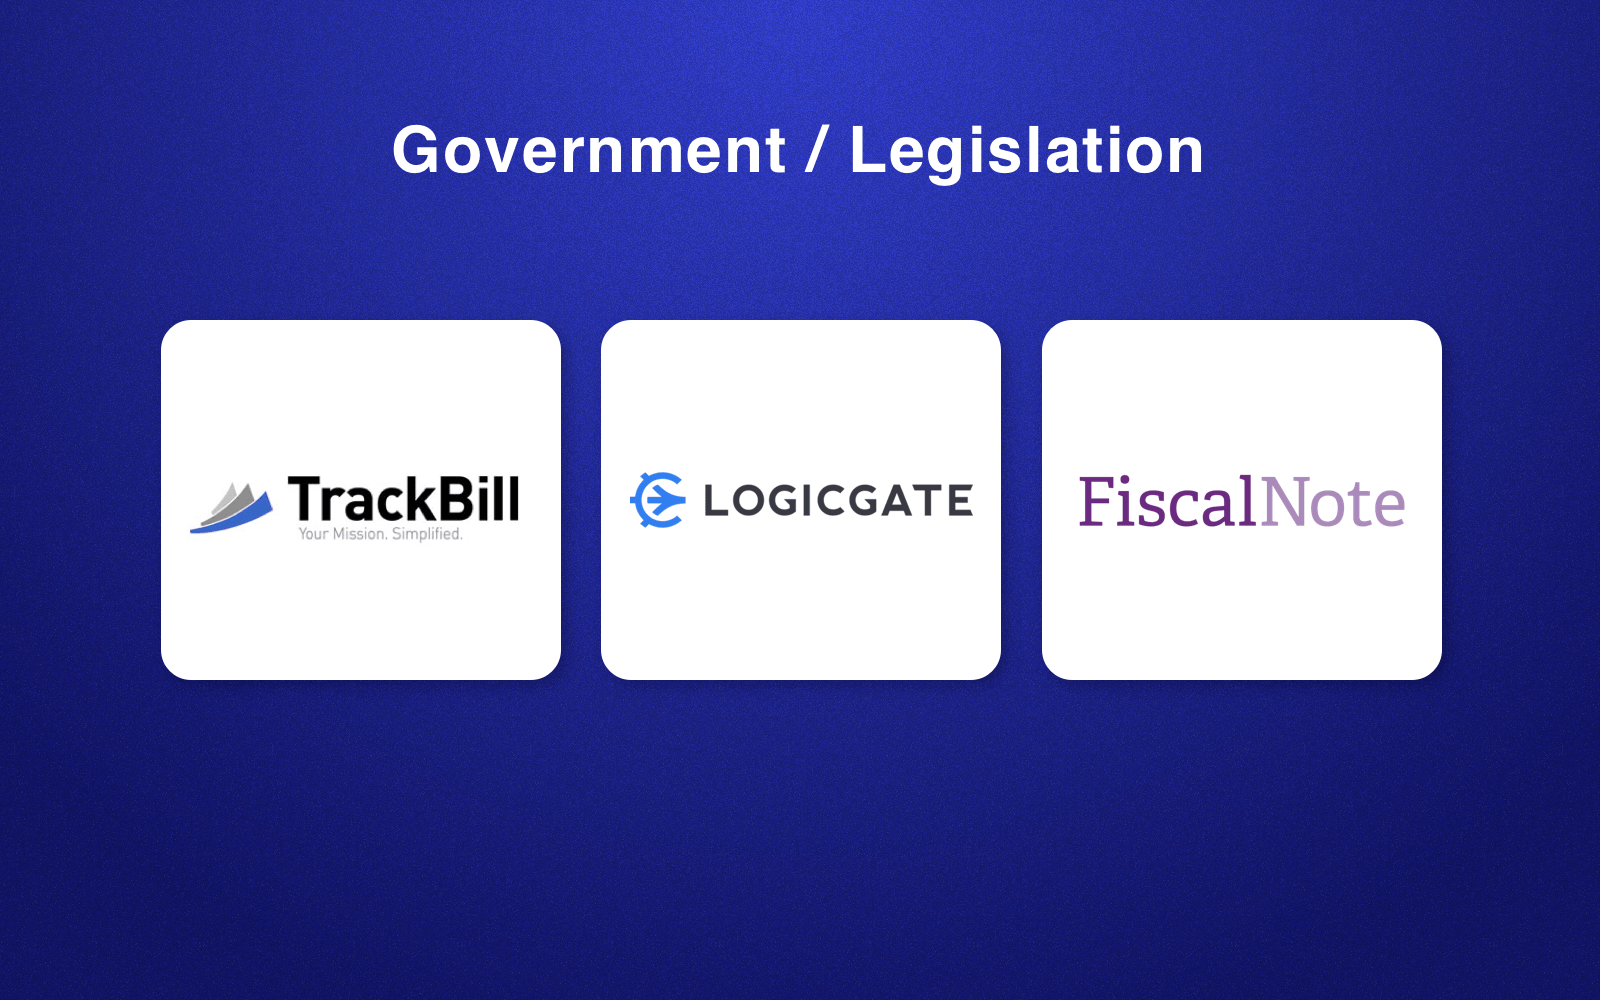 RegTech companies in government/legislation field